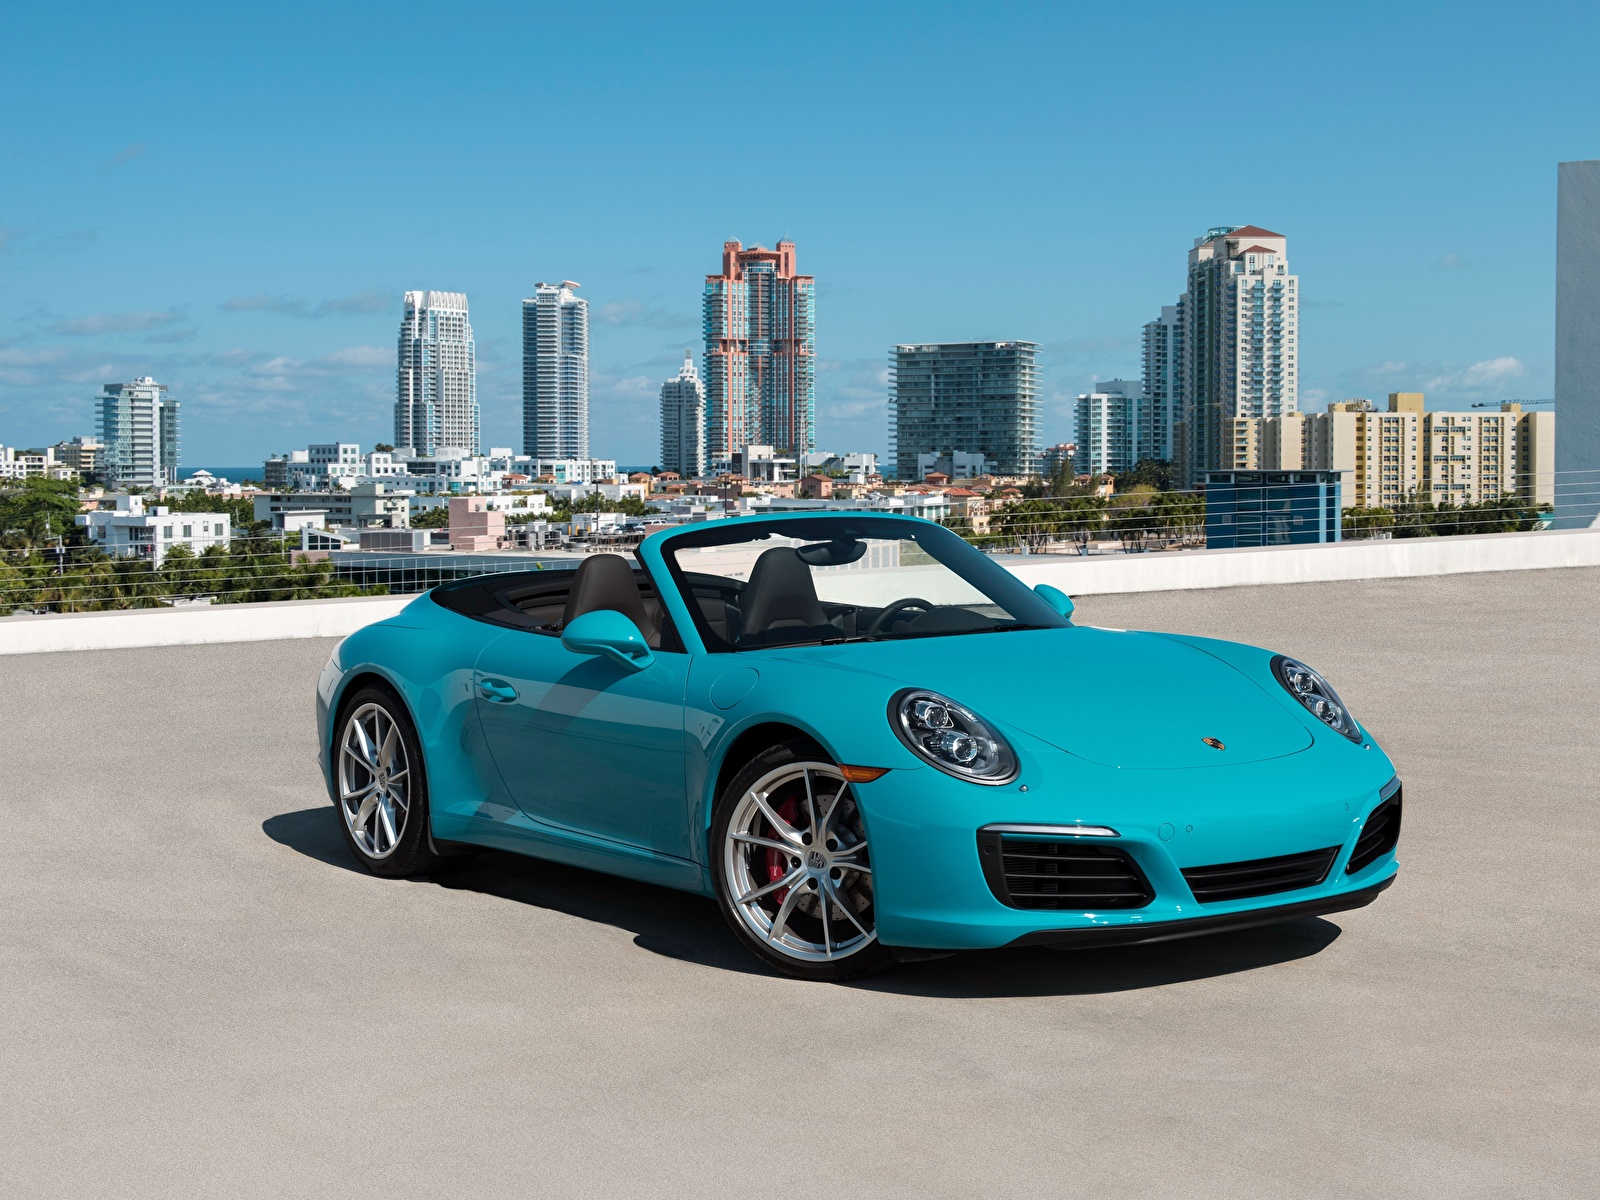 Porsche 911 Carrera Convertible 4S - Color | Light Blue